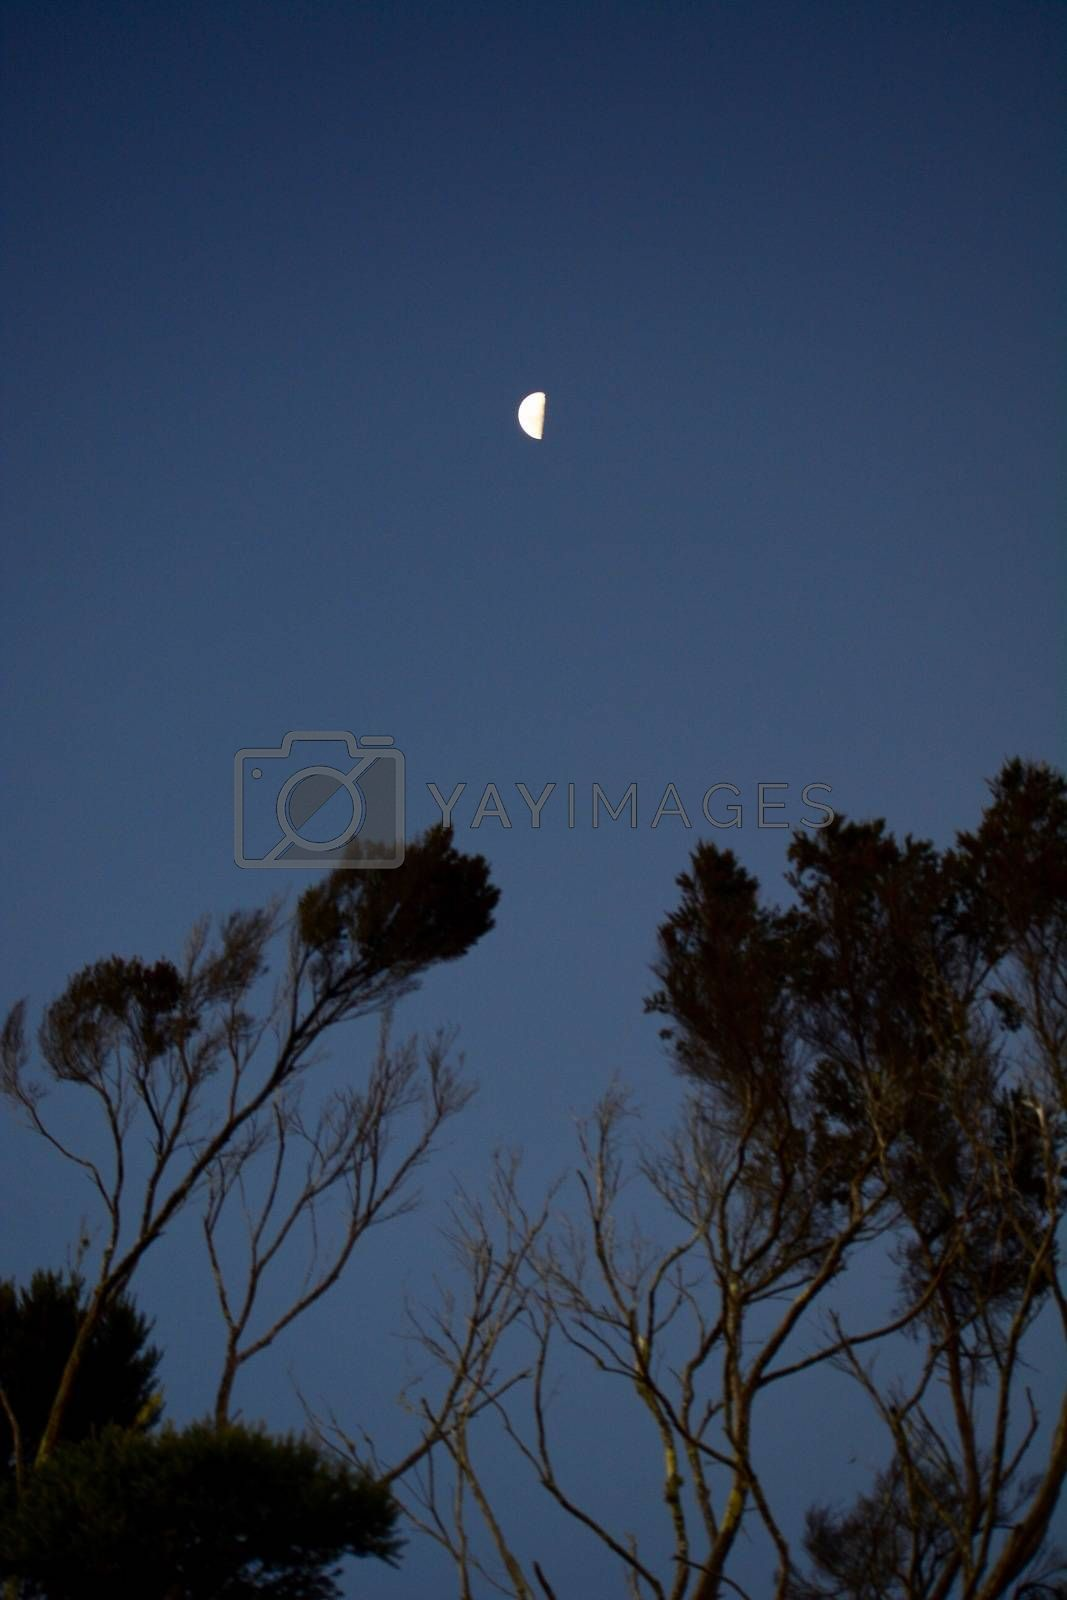 Sky in the evening or at night; silhouettes of trees; half-moon above the trees; sky in the late evening